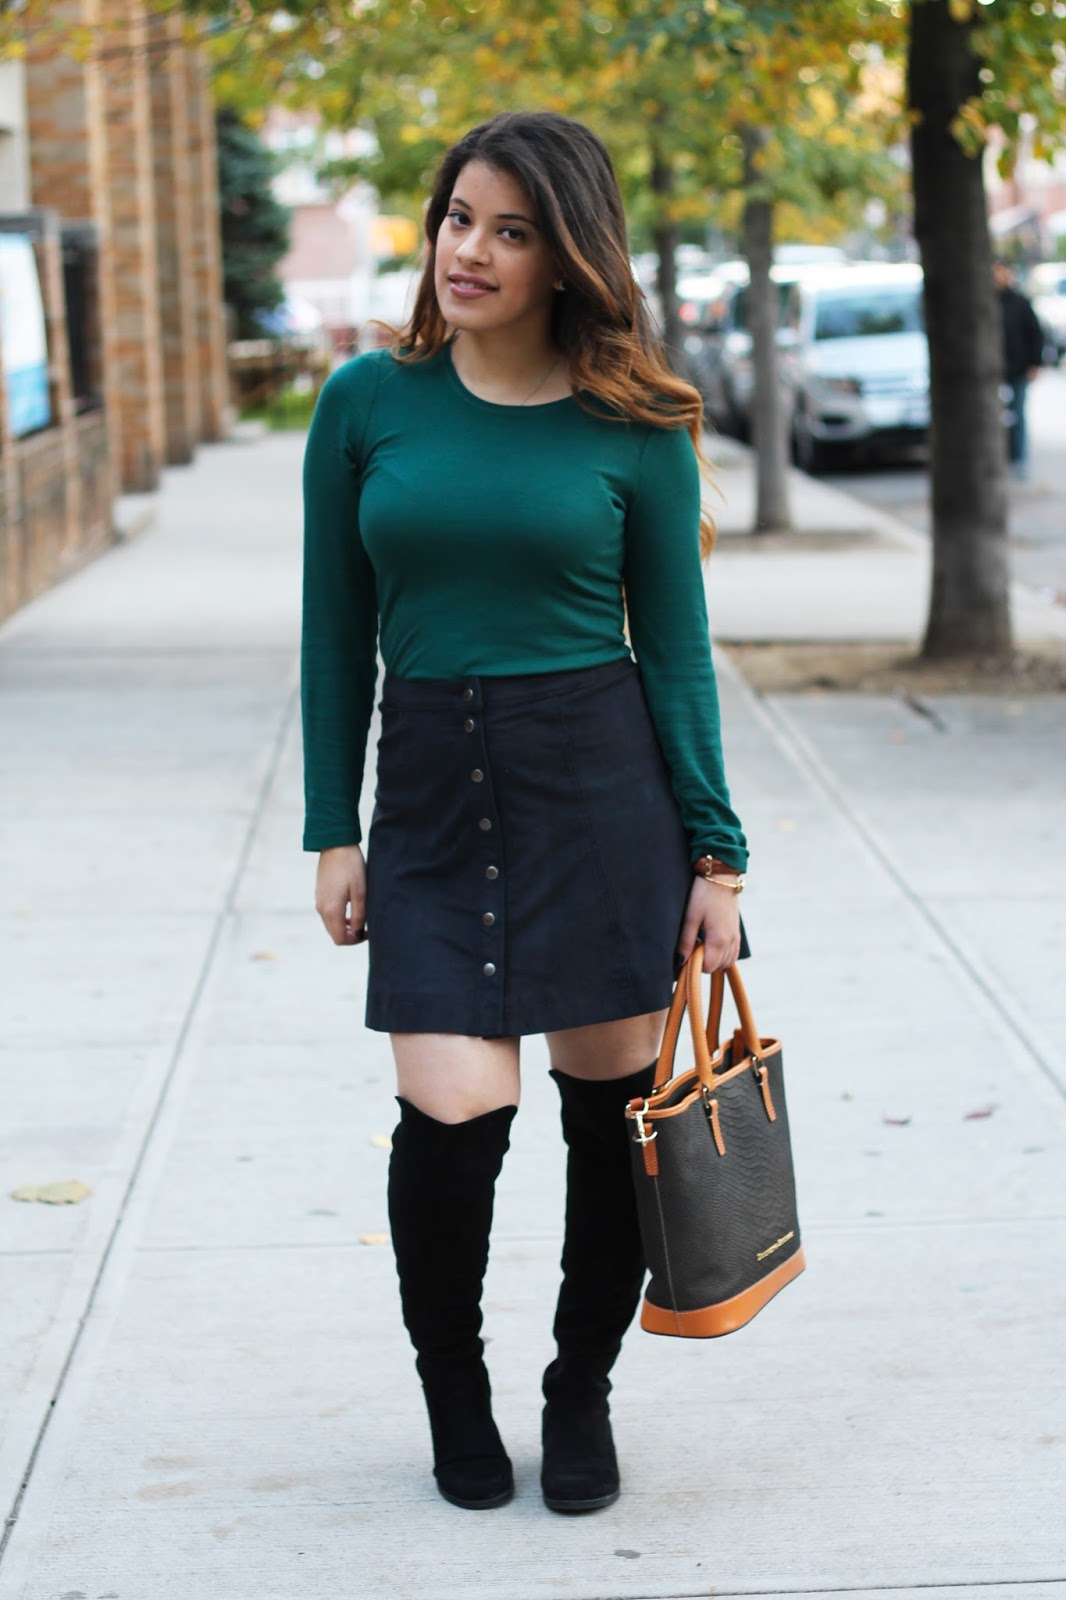 marshalls, daniel wellington, daniel wellington watch, abercrombie and fitch, Dooney and bourke, over the knee boots, button skirt, fall, fashion, latina, blogger, beautiful fall style,